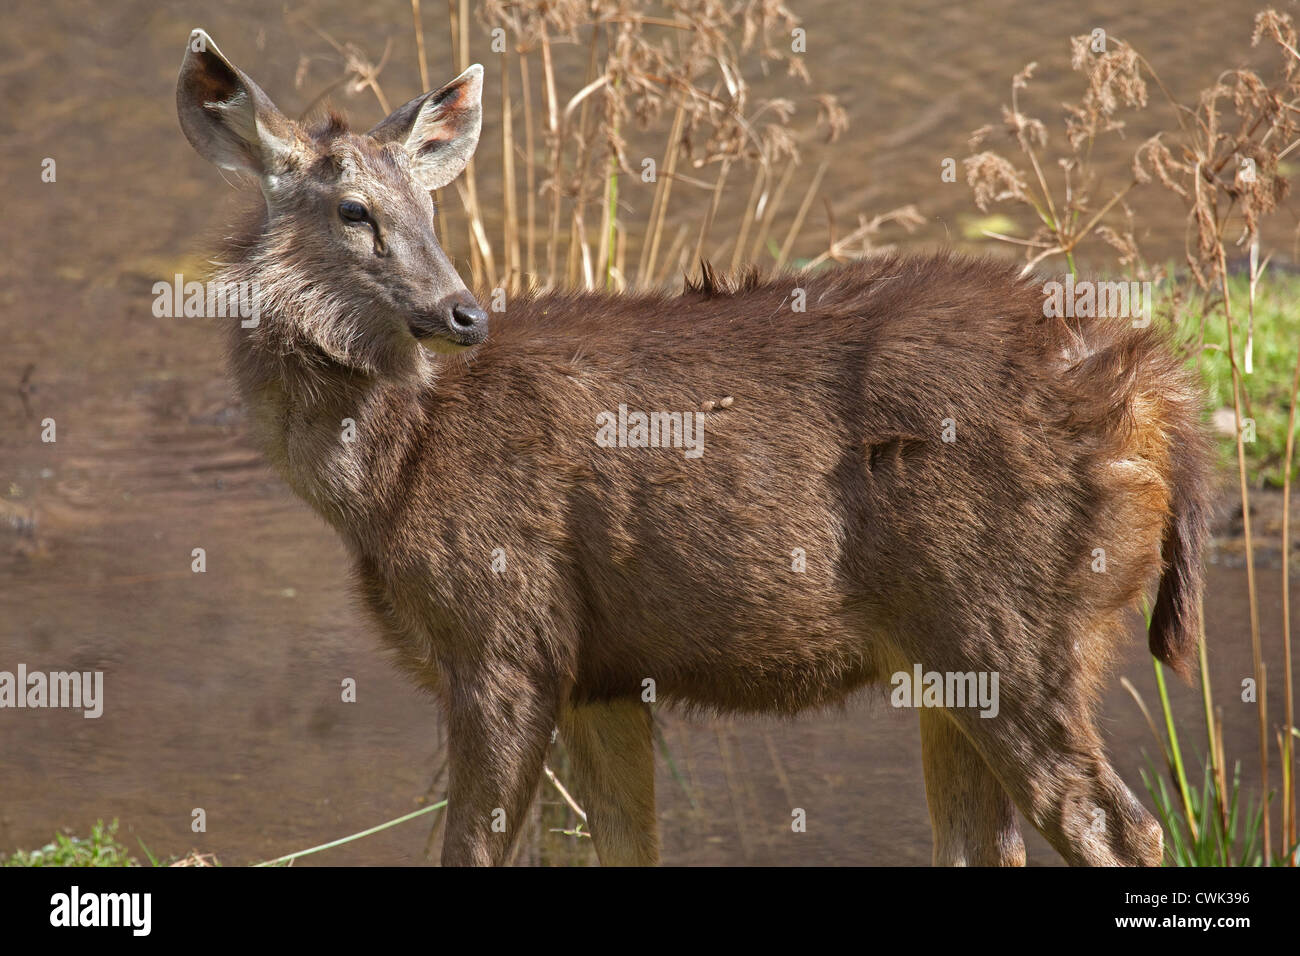 Sambar deer (Cervus unicolor / Rusa unicolor) female at the Ranthambore National Park, Sawai Madhopur, Rajasthan, - Stock Image